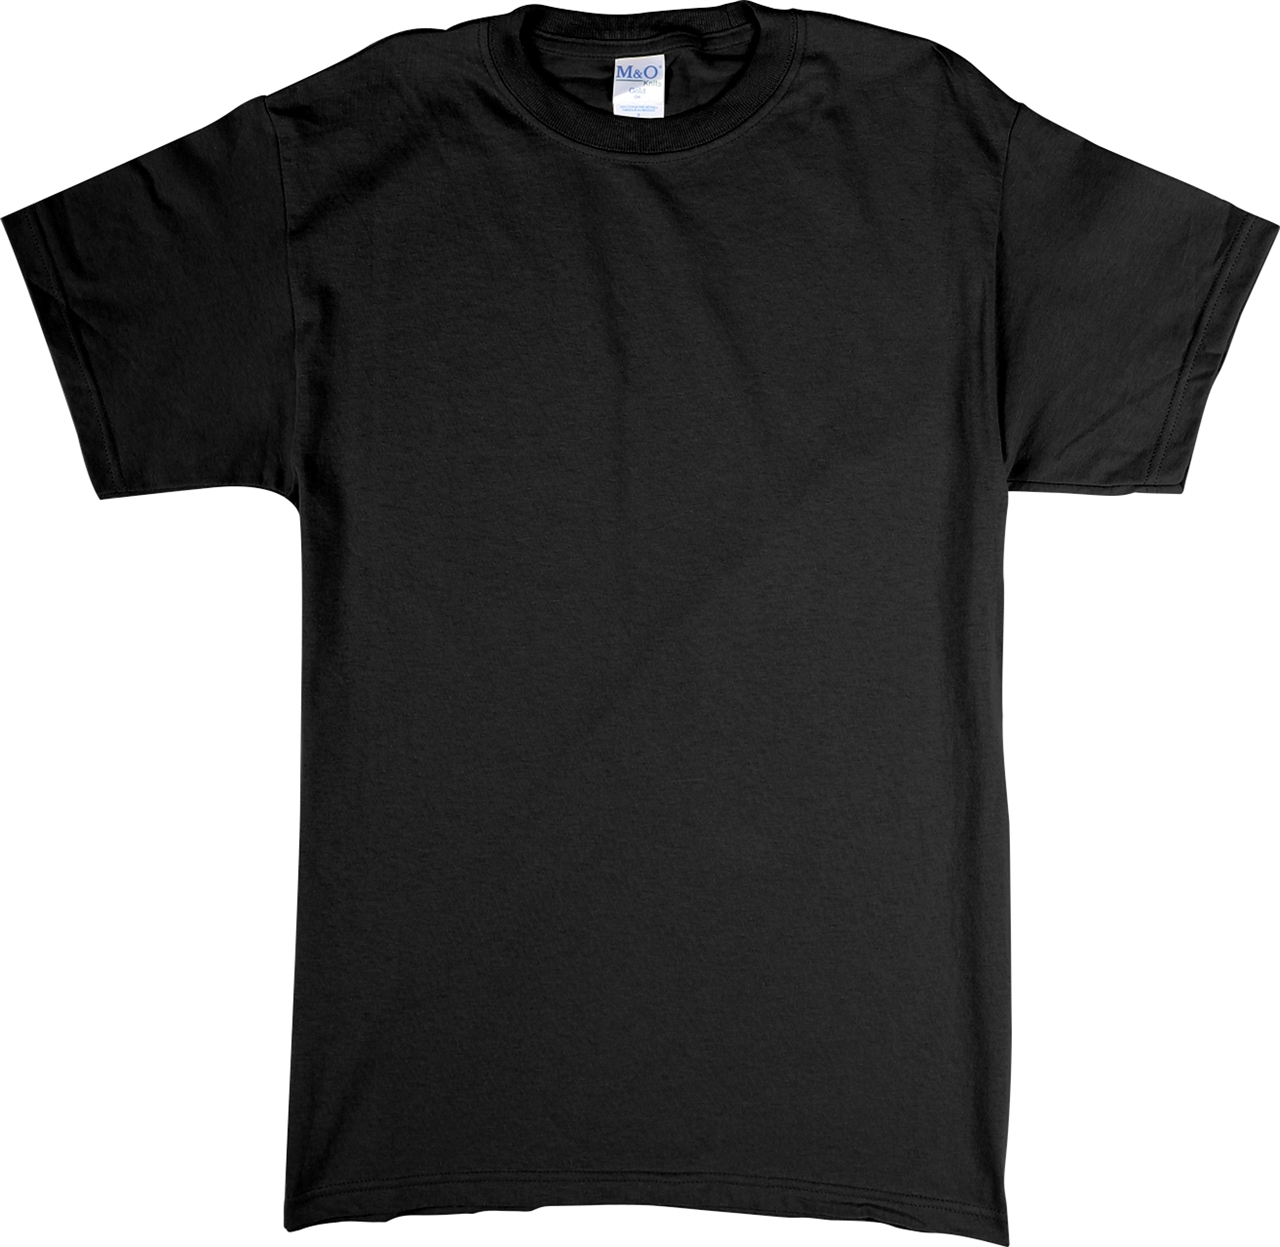 Picture of M&O Gold Soft Touch T-Shirt